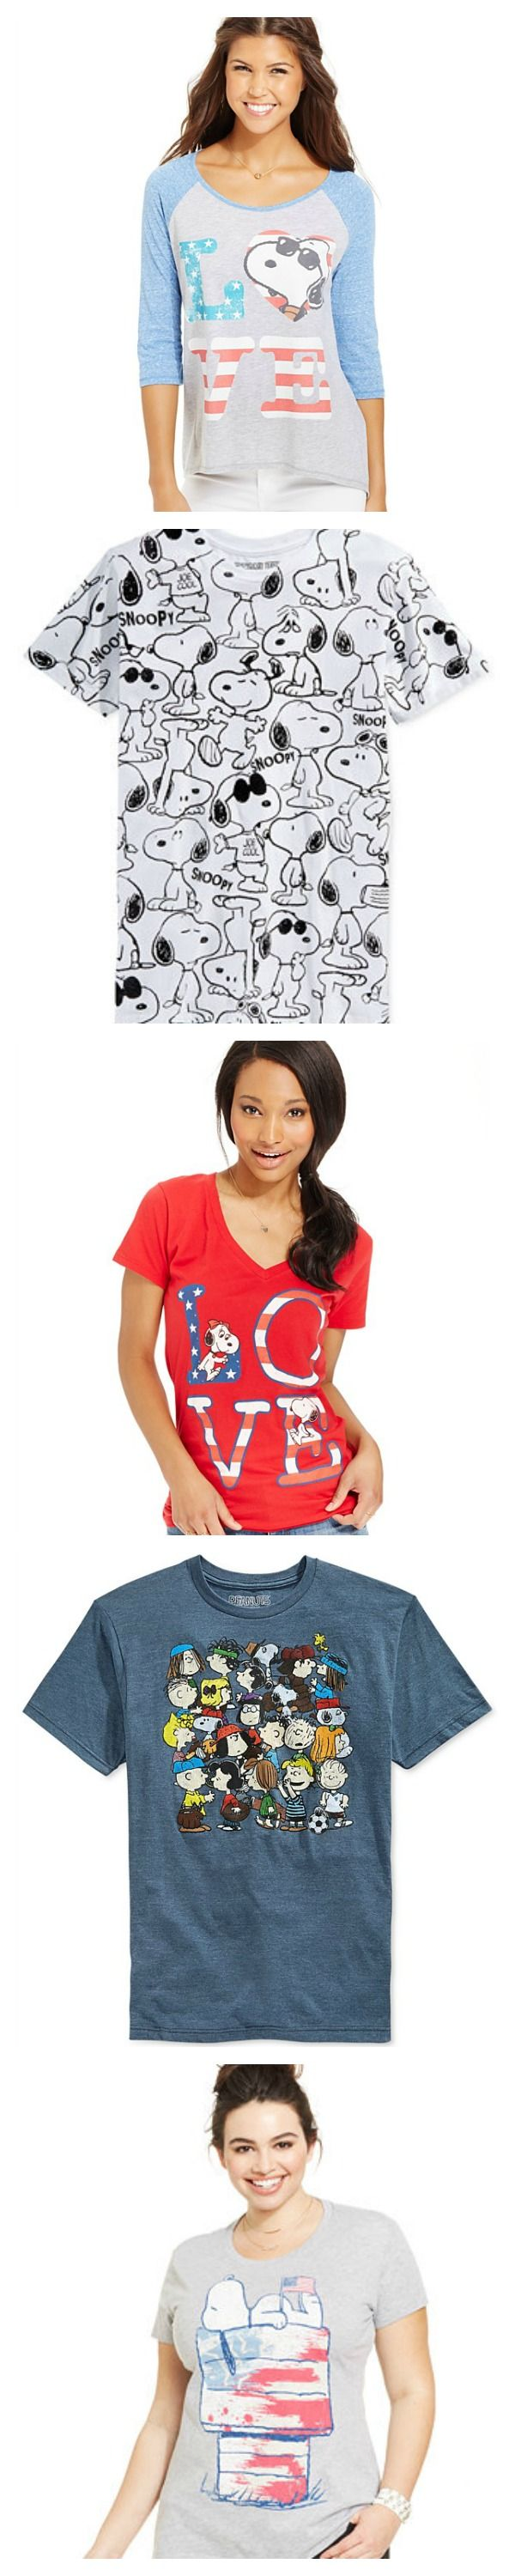 Love Snoopy? Love America? Head to Macy's to show your love of both with Peanuts t-shirts in Juniors, Mens and Kids sizes. Start shopping online at CollectPeanuts.com to help support our site.